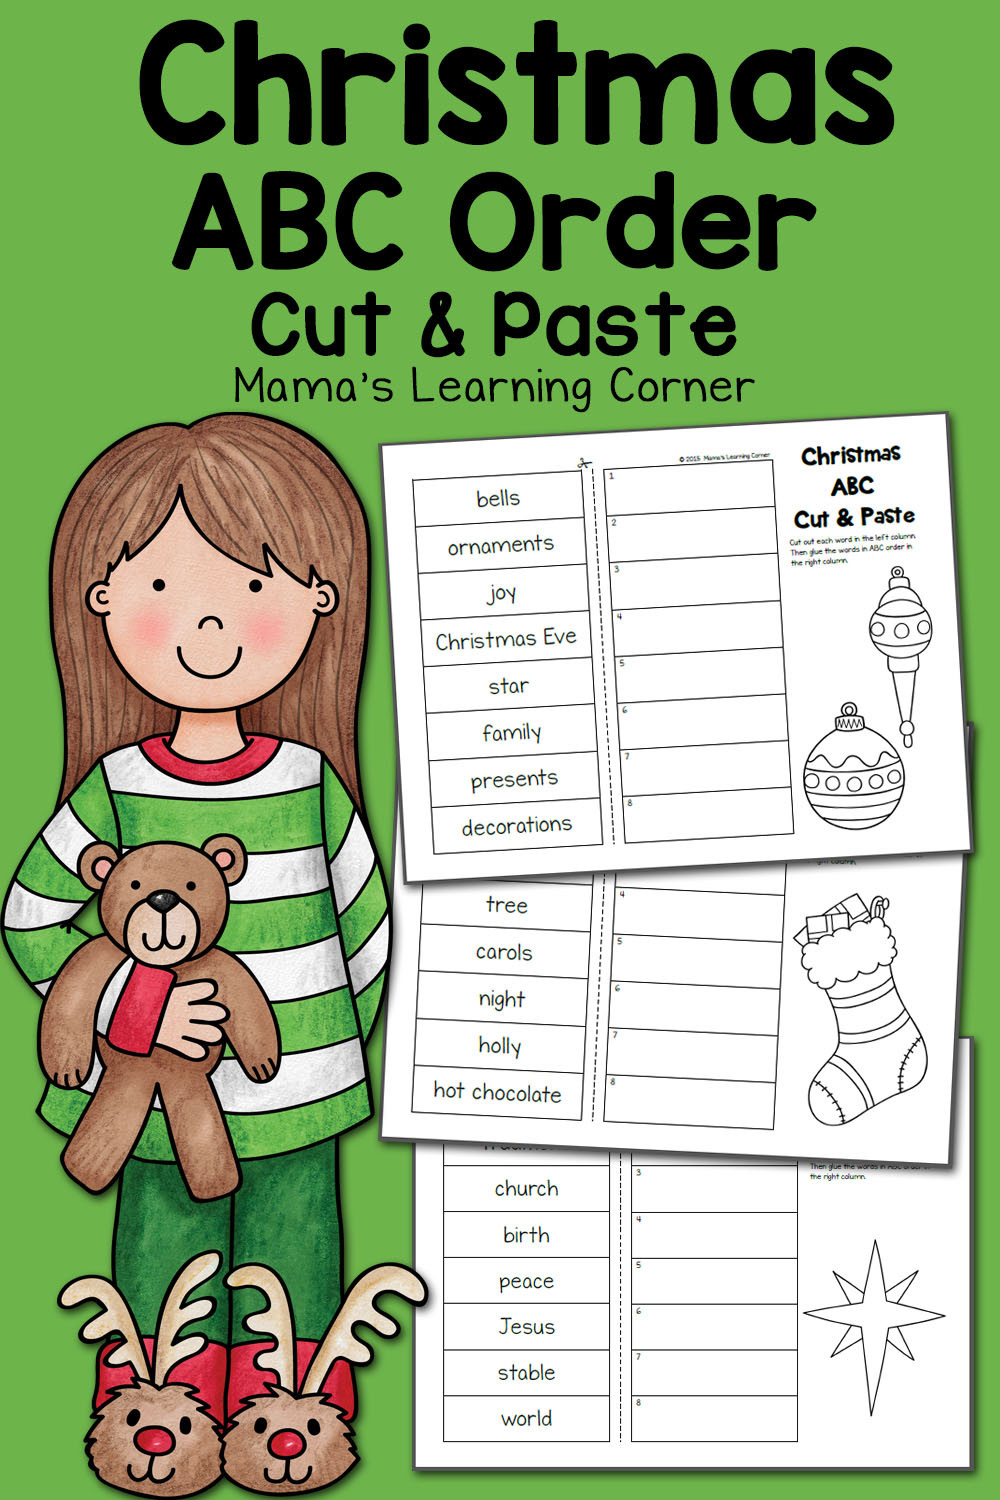 Printable Abc order Worksheets Christmas Abc order Worksheets Cut and Paste Mamas